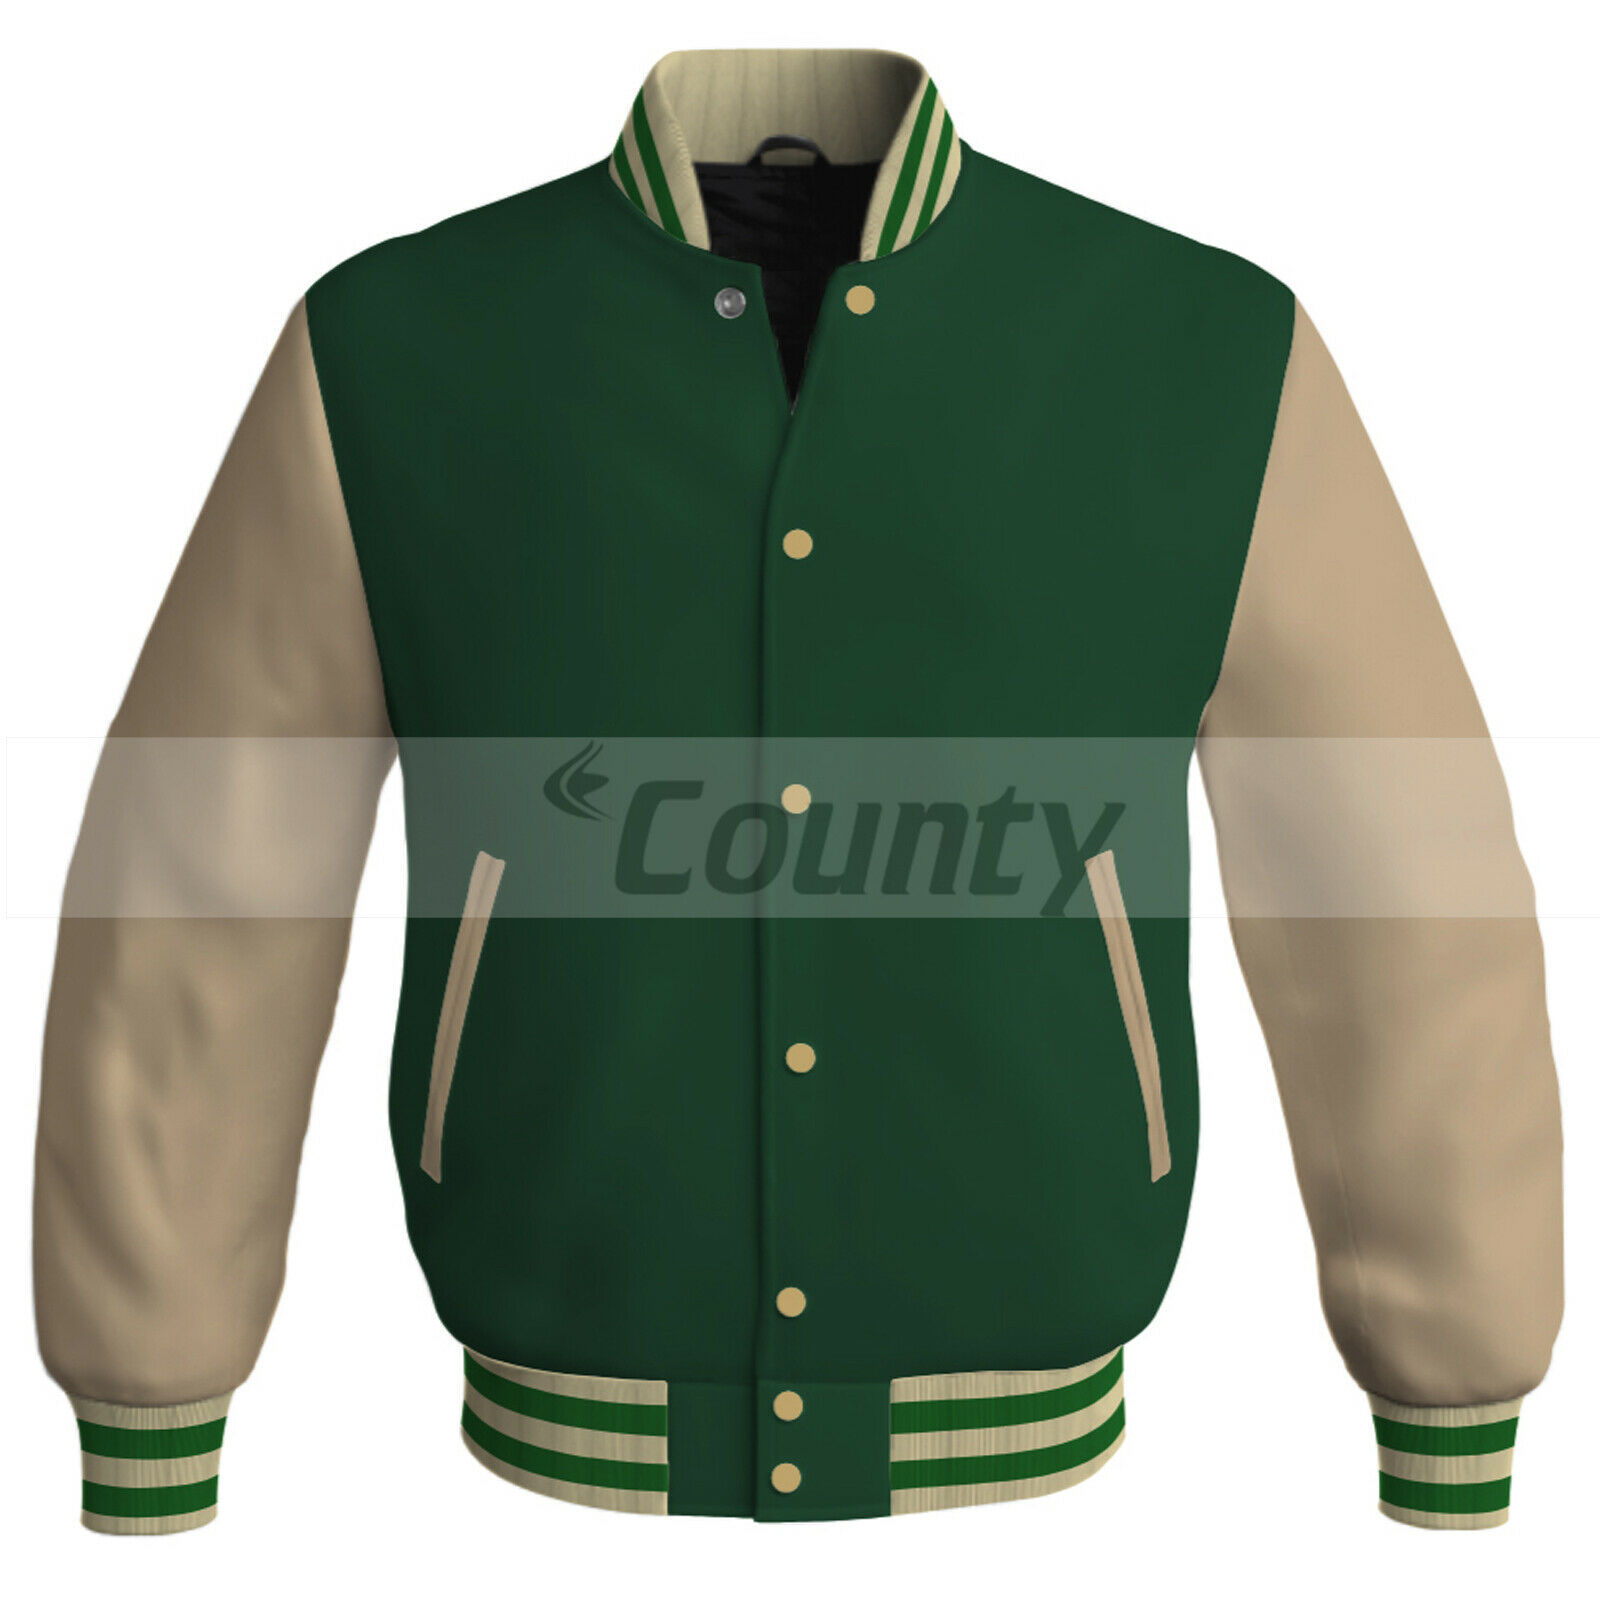 Primary image for Letterman College Baseball Bomber Jacket Sports Forest Green Cream Ivory Satin